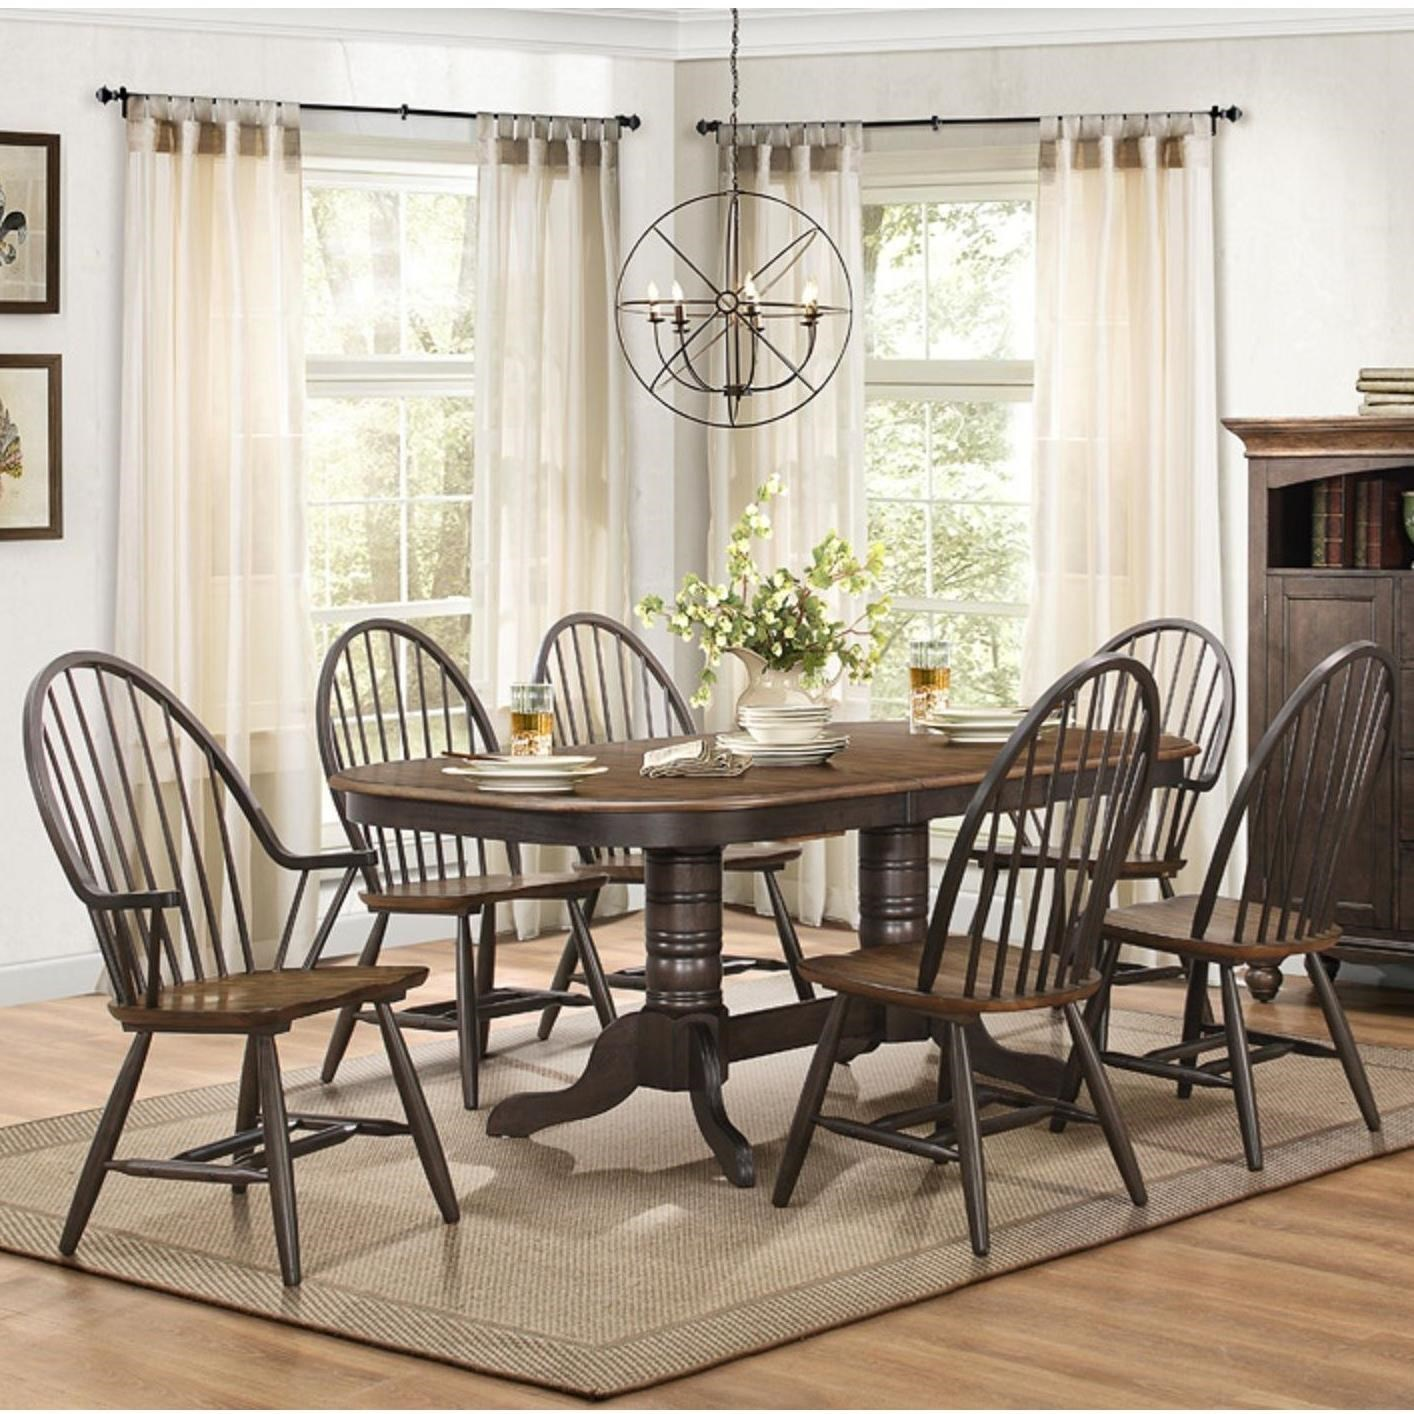 Dining Room Chair Sets Cline Transitional Dining Table And Chair Set With Two Tone Finish By Homelegance At Value City Furniture